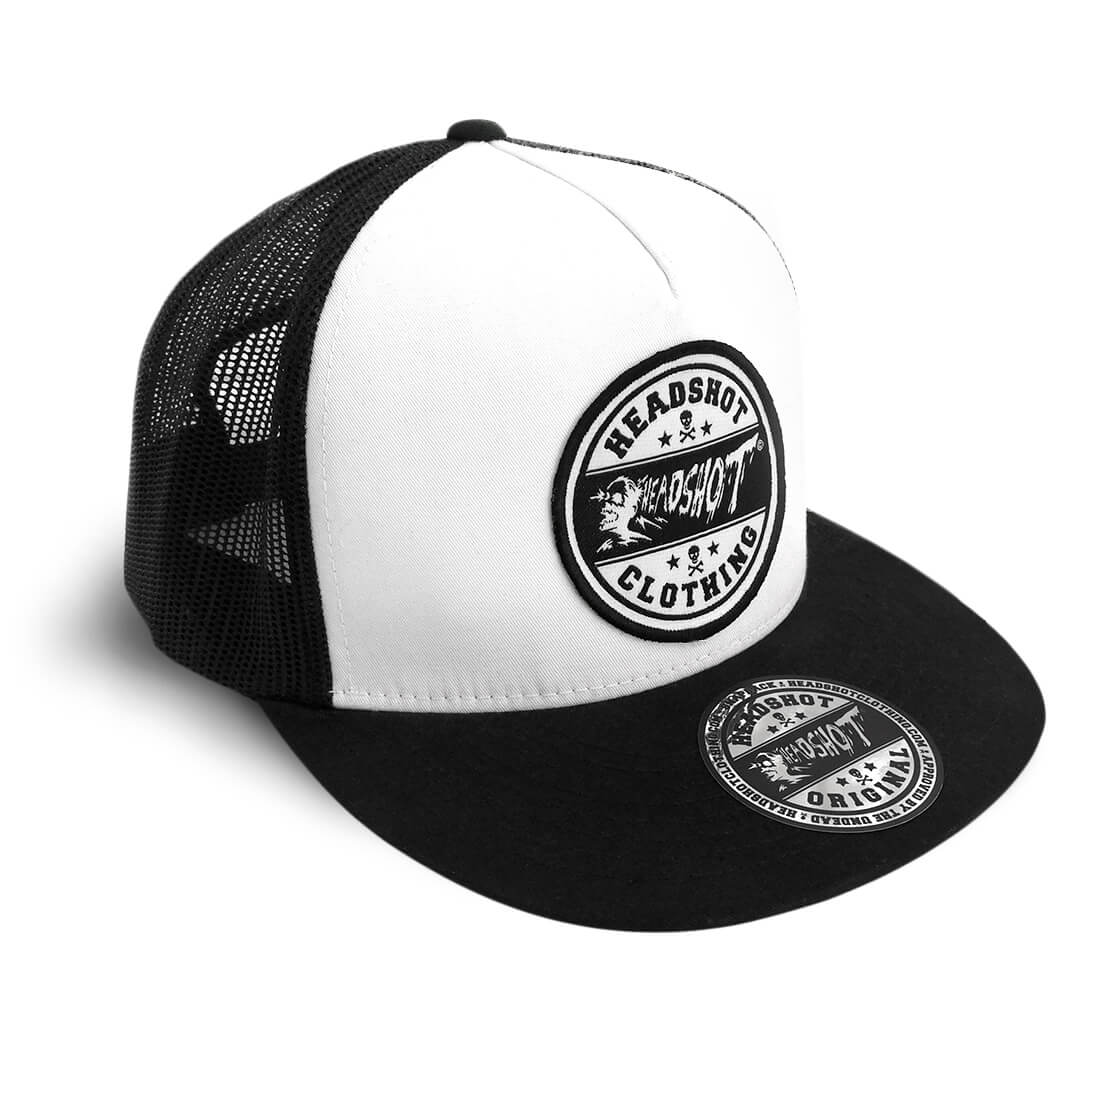 Trucker Cap   Snapback – Headshot Original Collection – Headshot ... ae870206feb